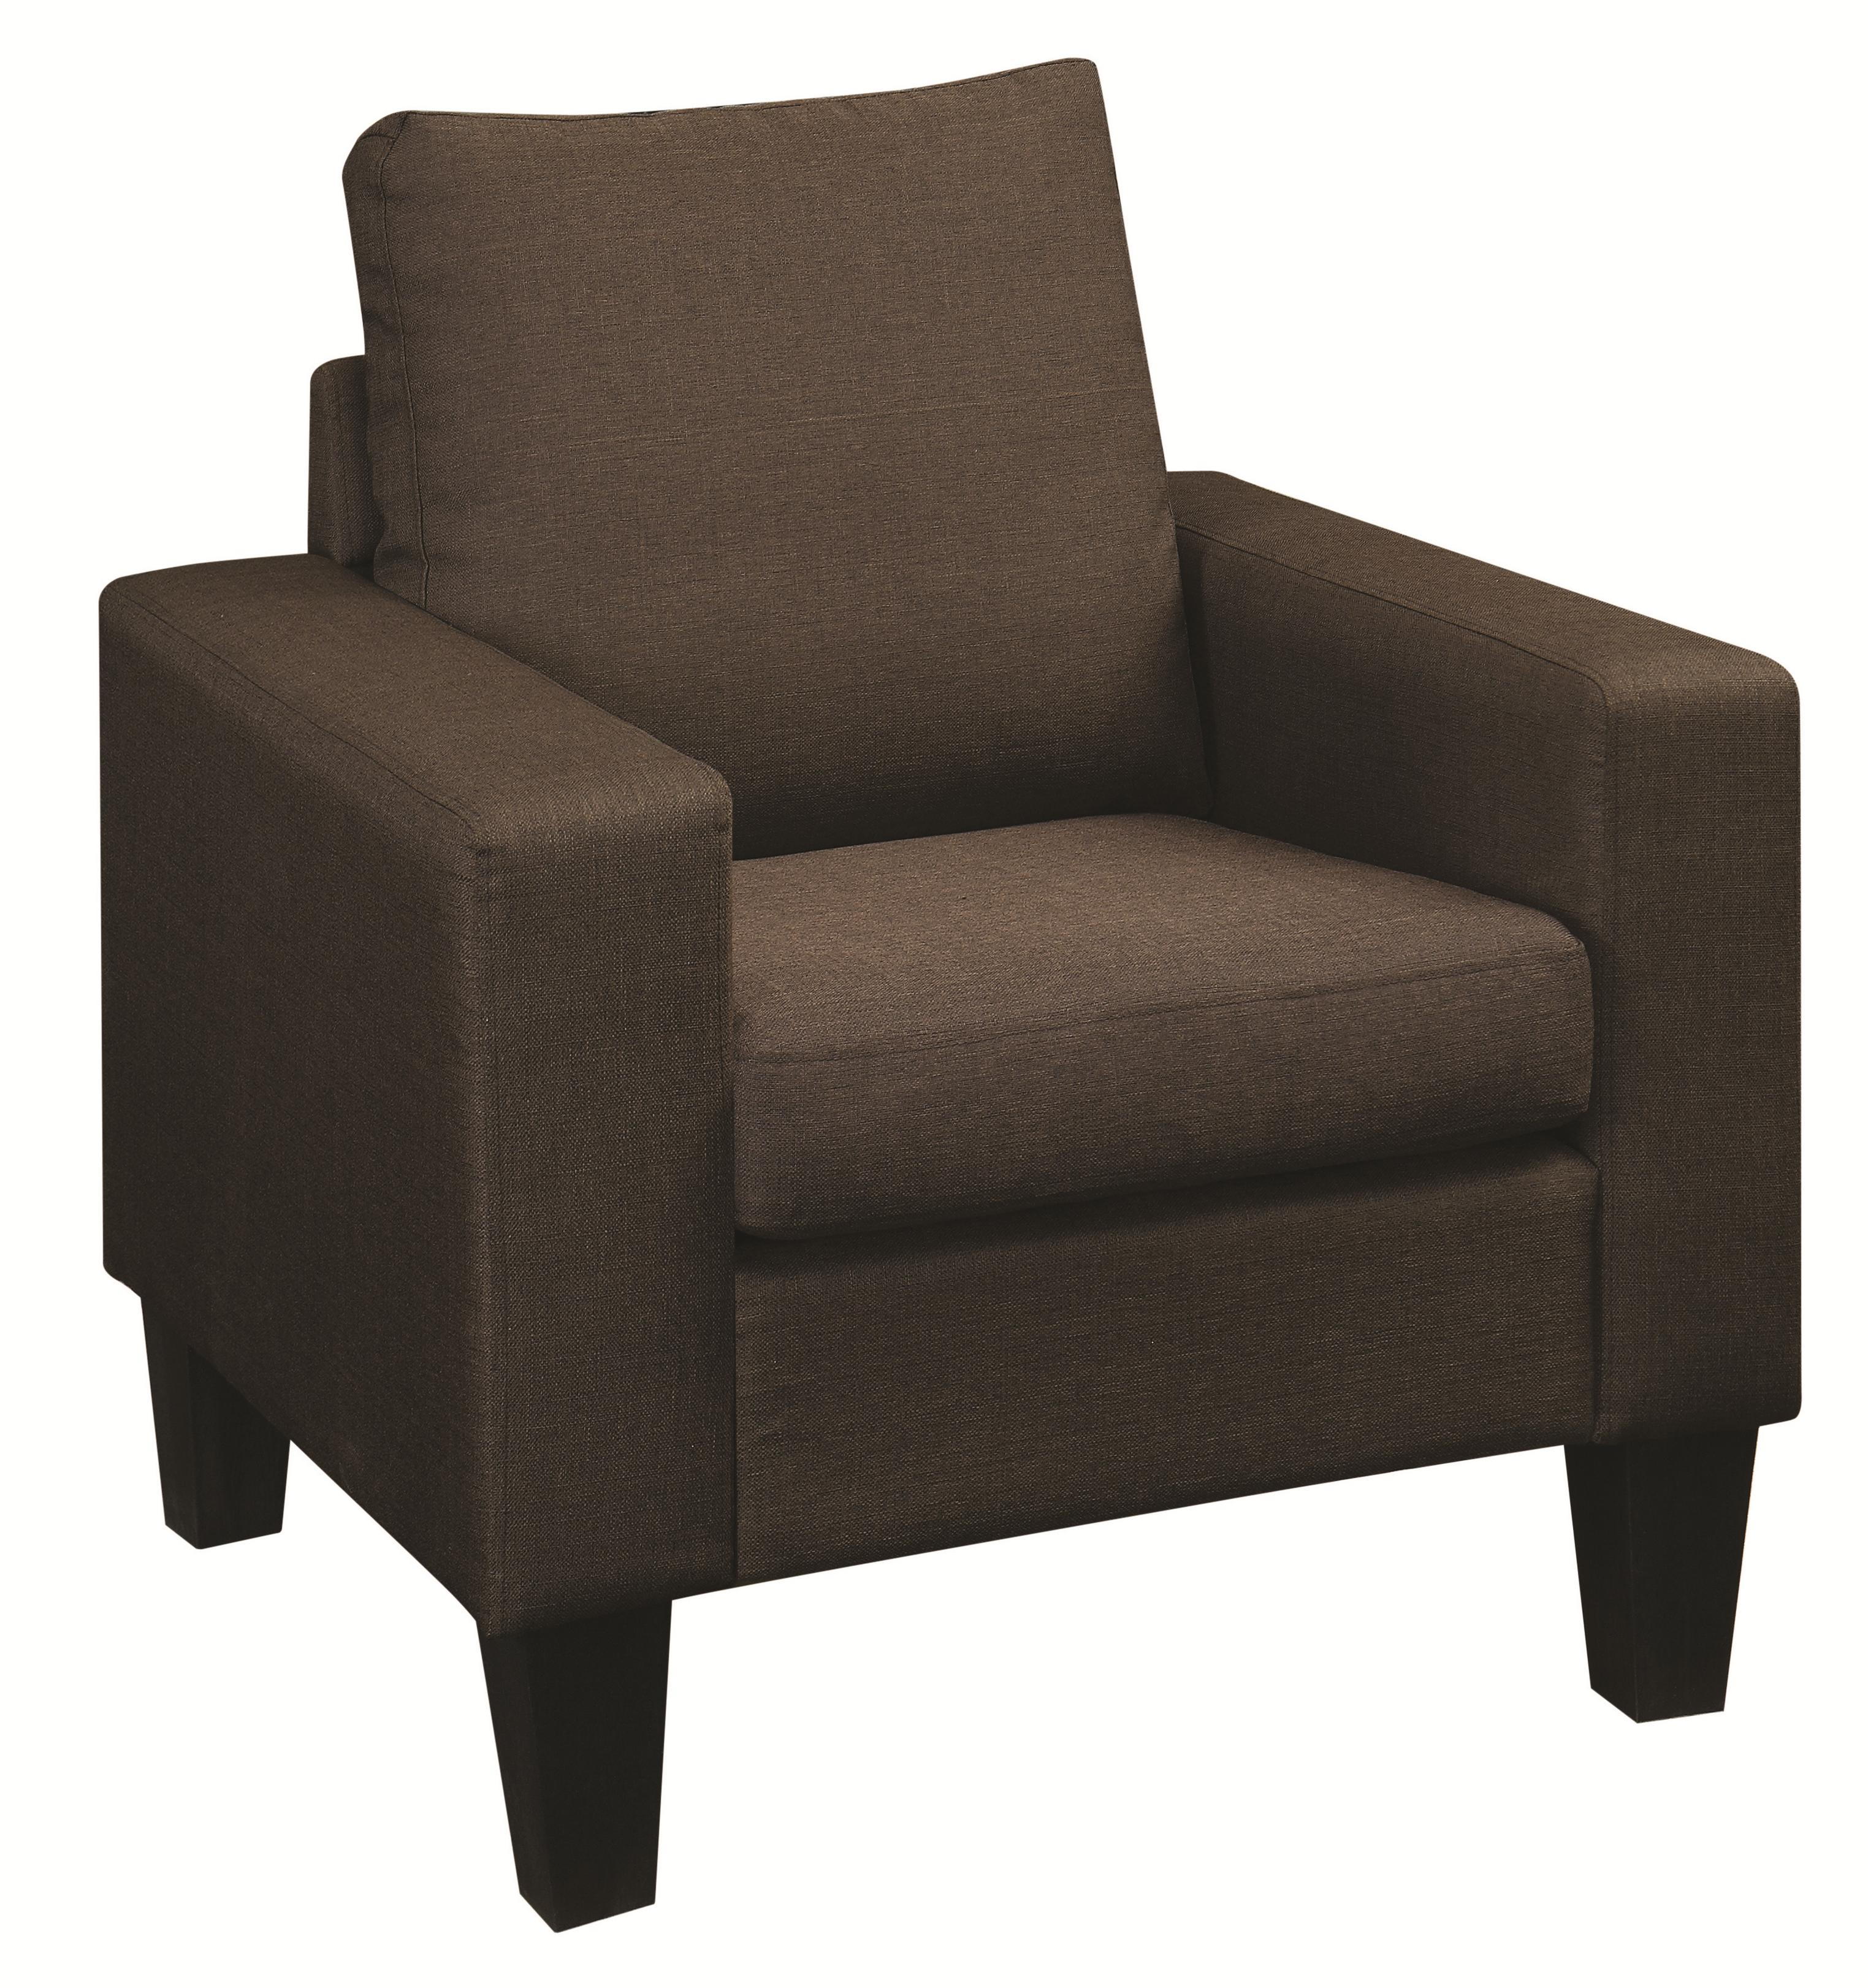 Coaster Bachman Upholstered Chair - Item Number: 504769-Chocolate Linen